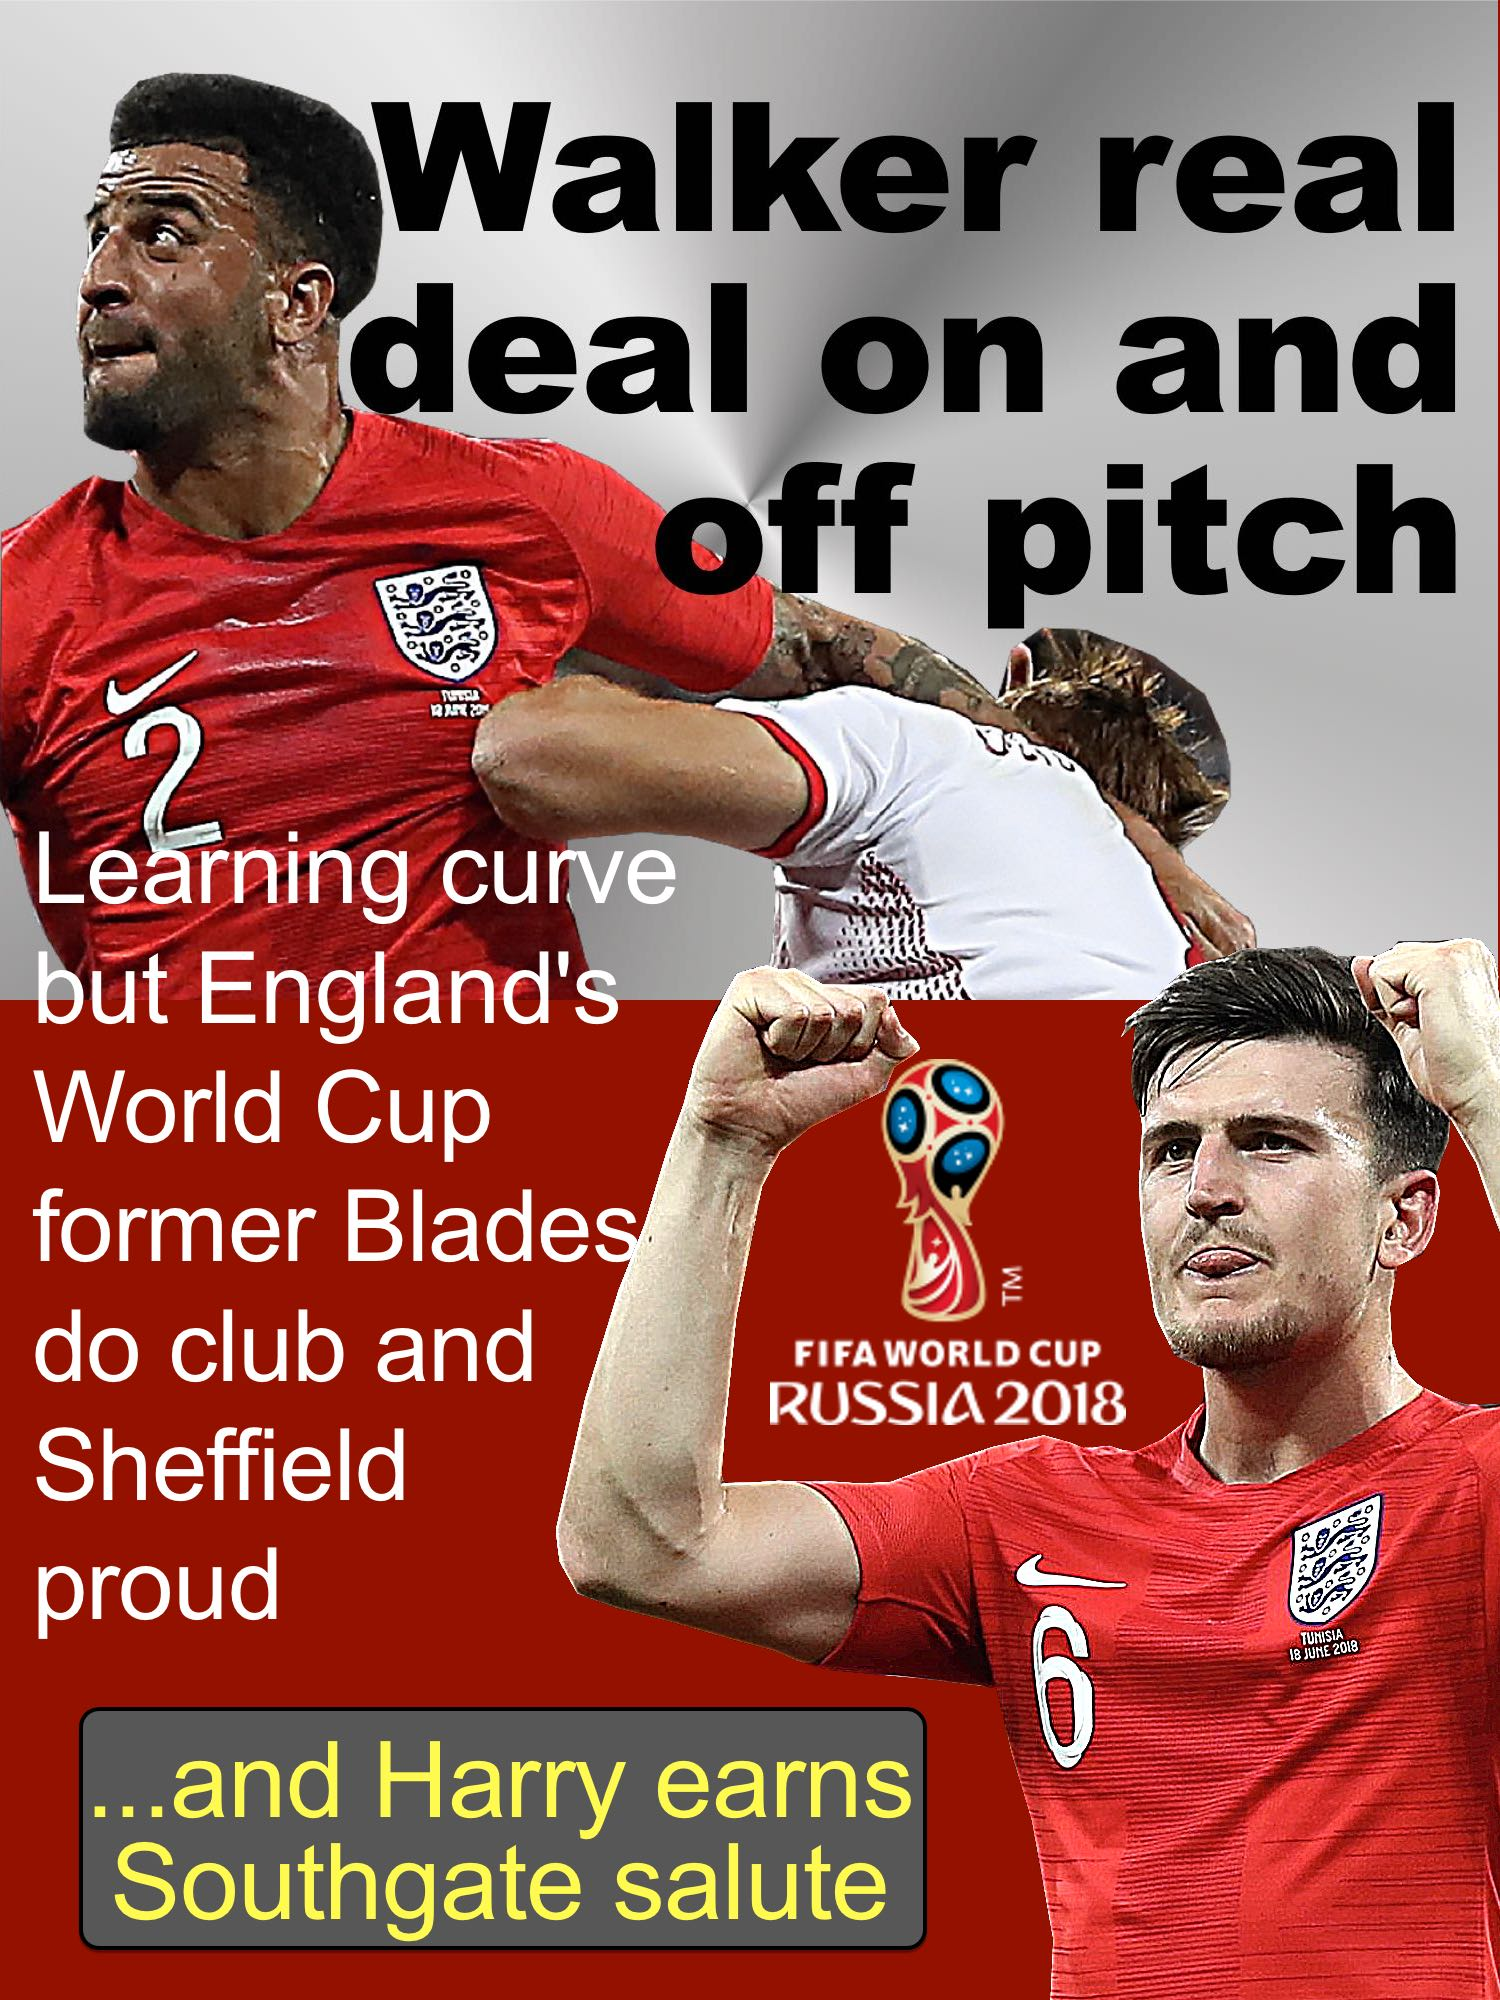 Former Sheffield United stars and lifelong Blades fans are real deal for England on World Cup stage